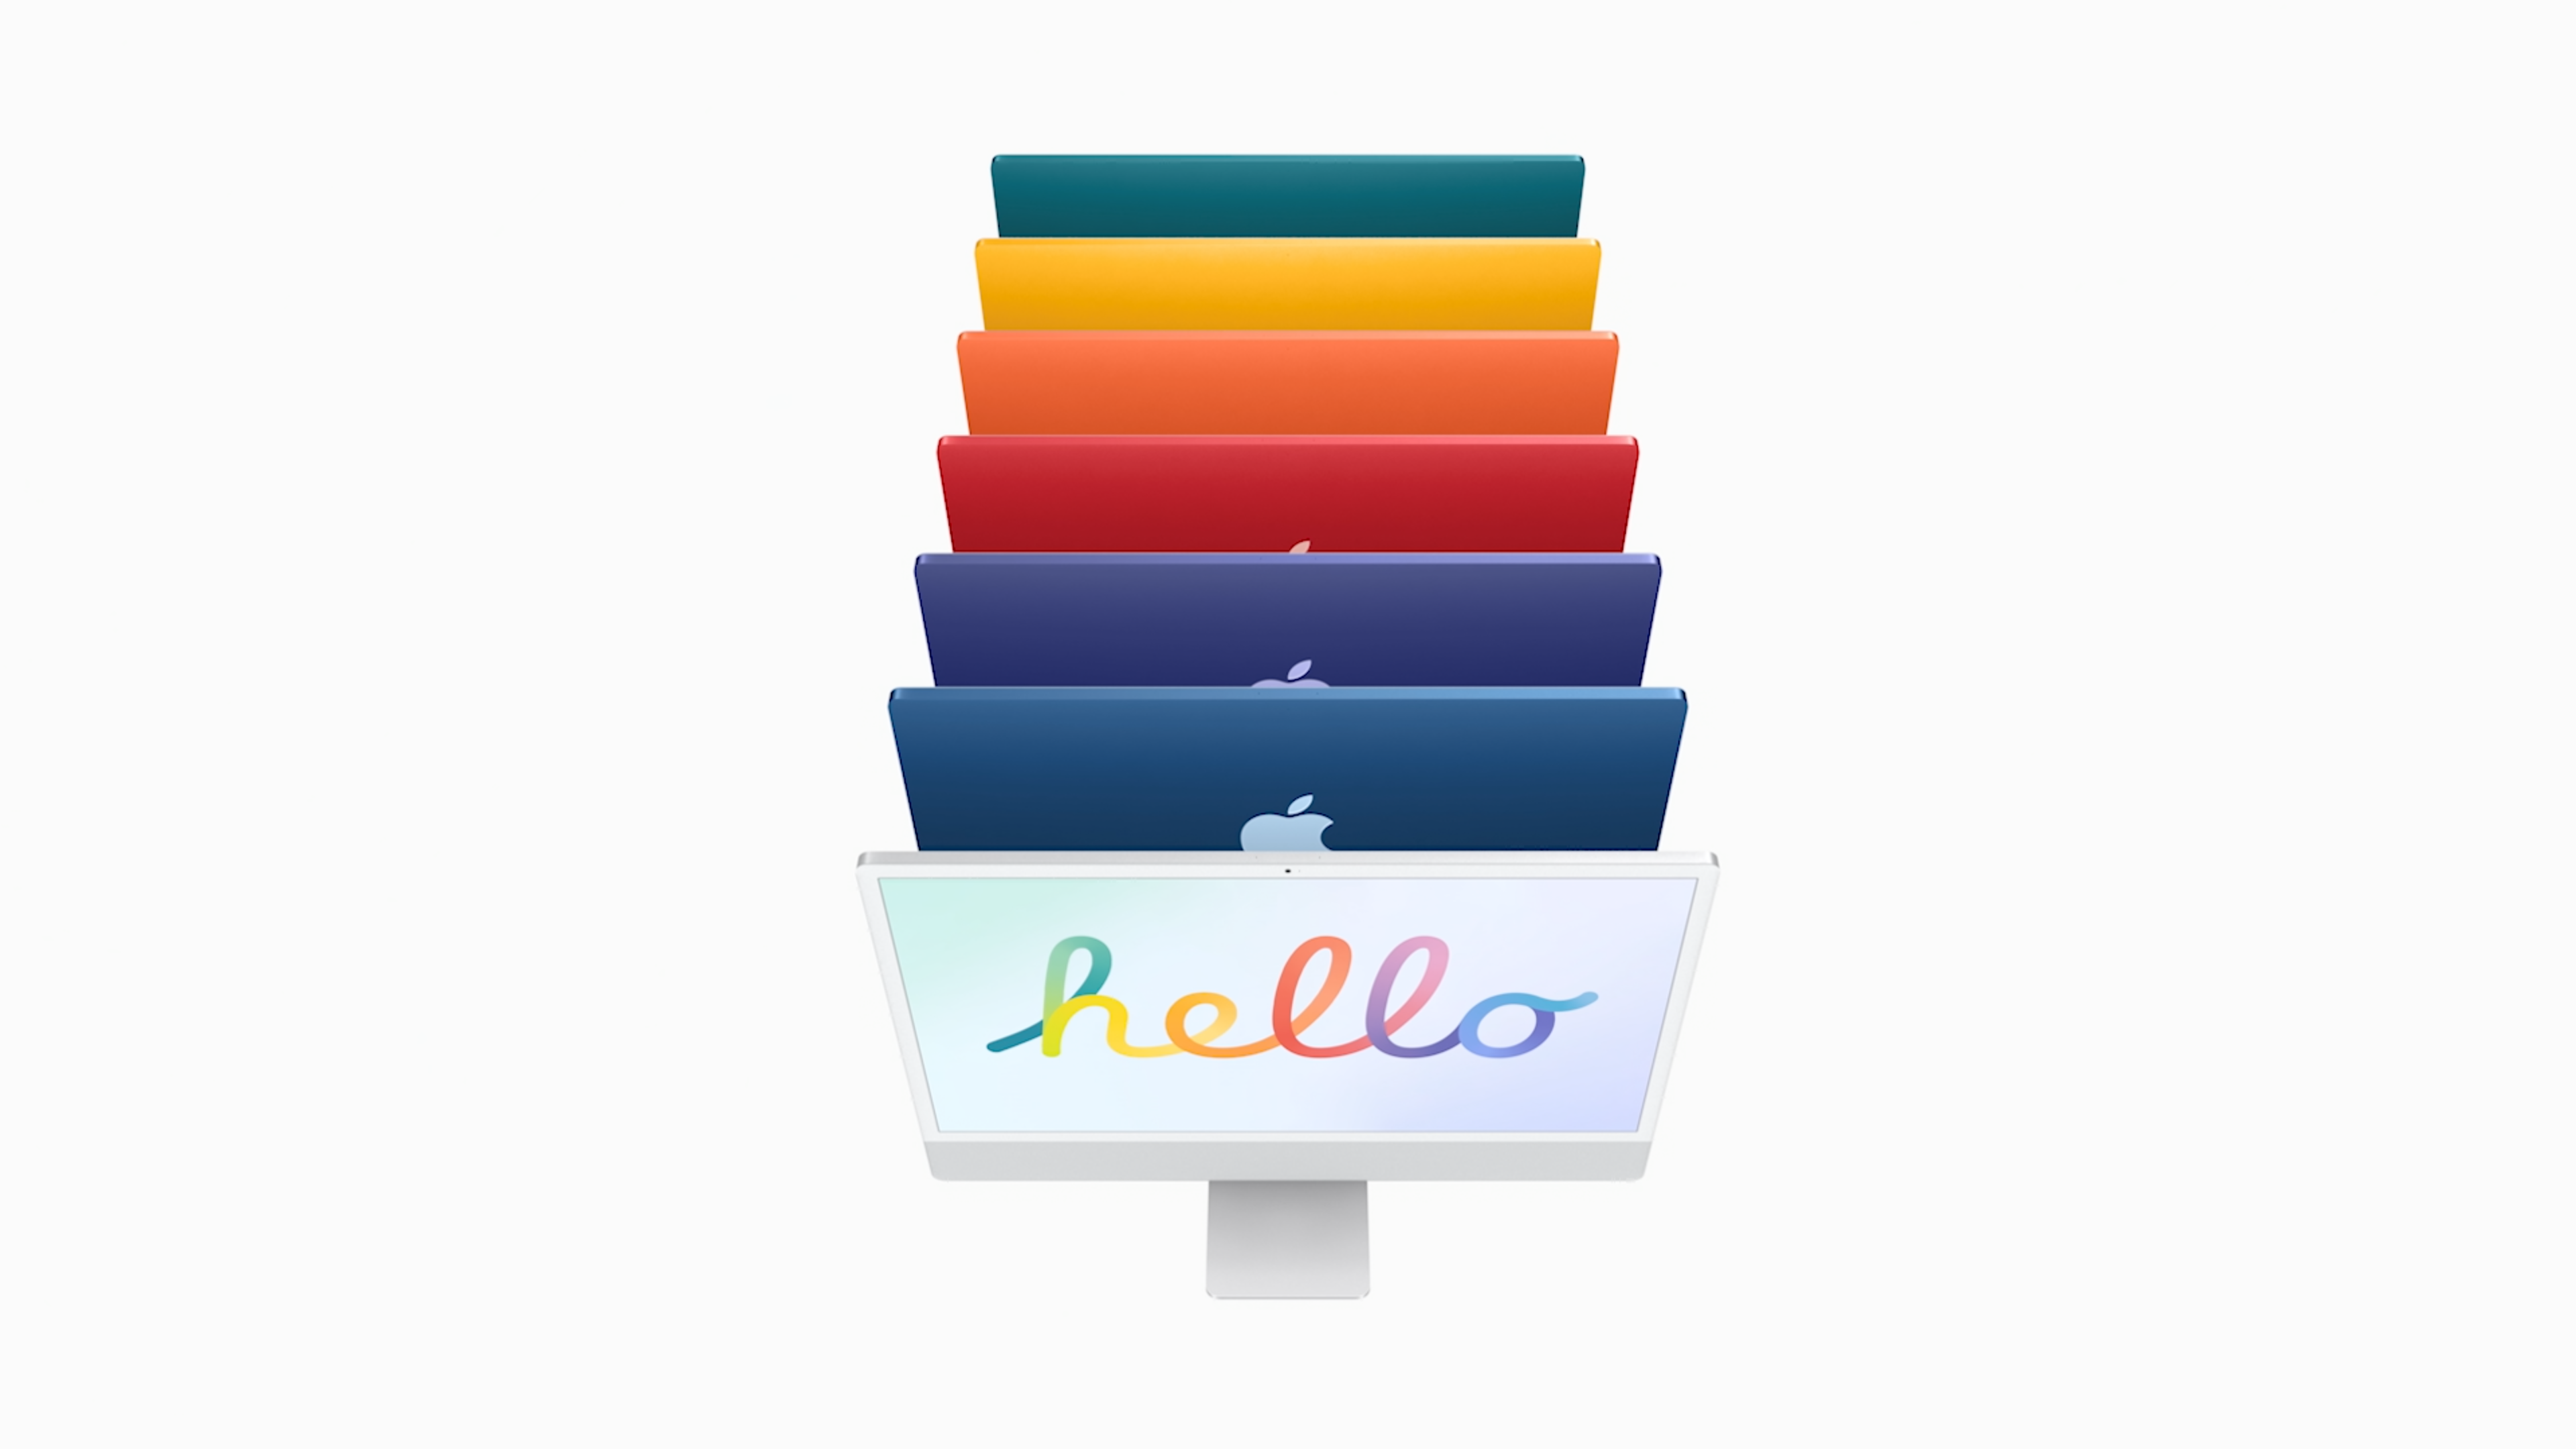 iMac 2021 in 7 colors with M1